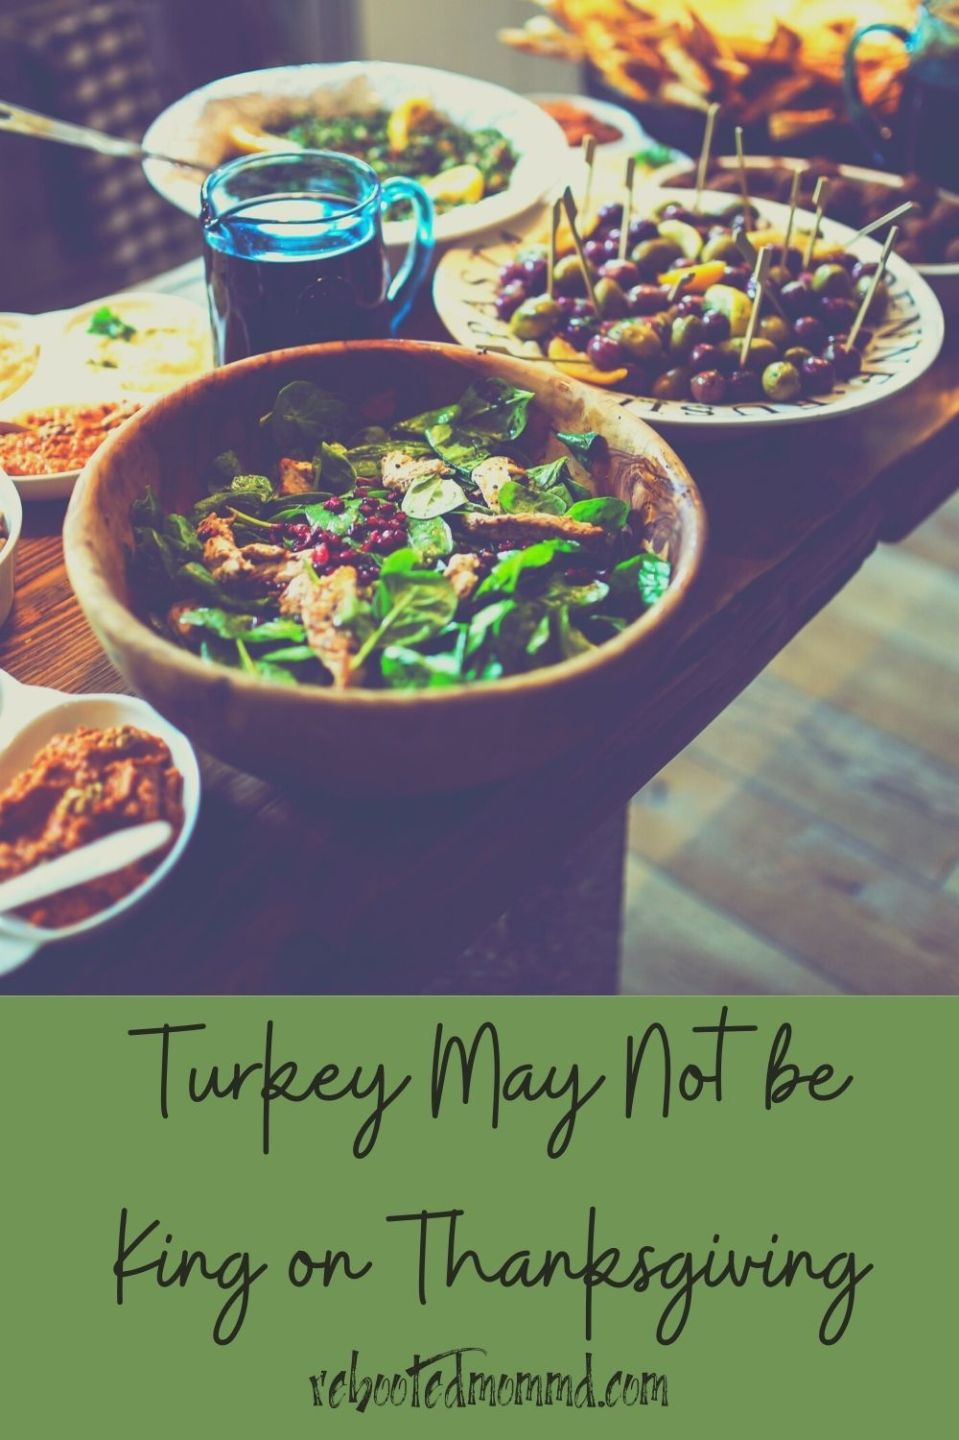 Turkey May Not be King on Thanksgiving